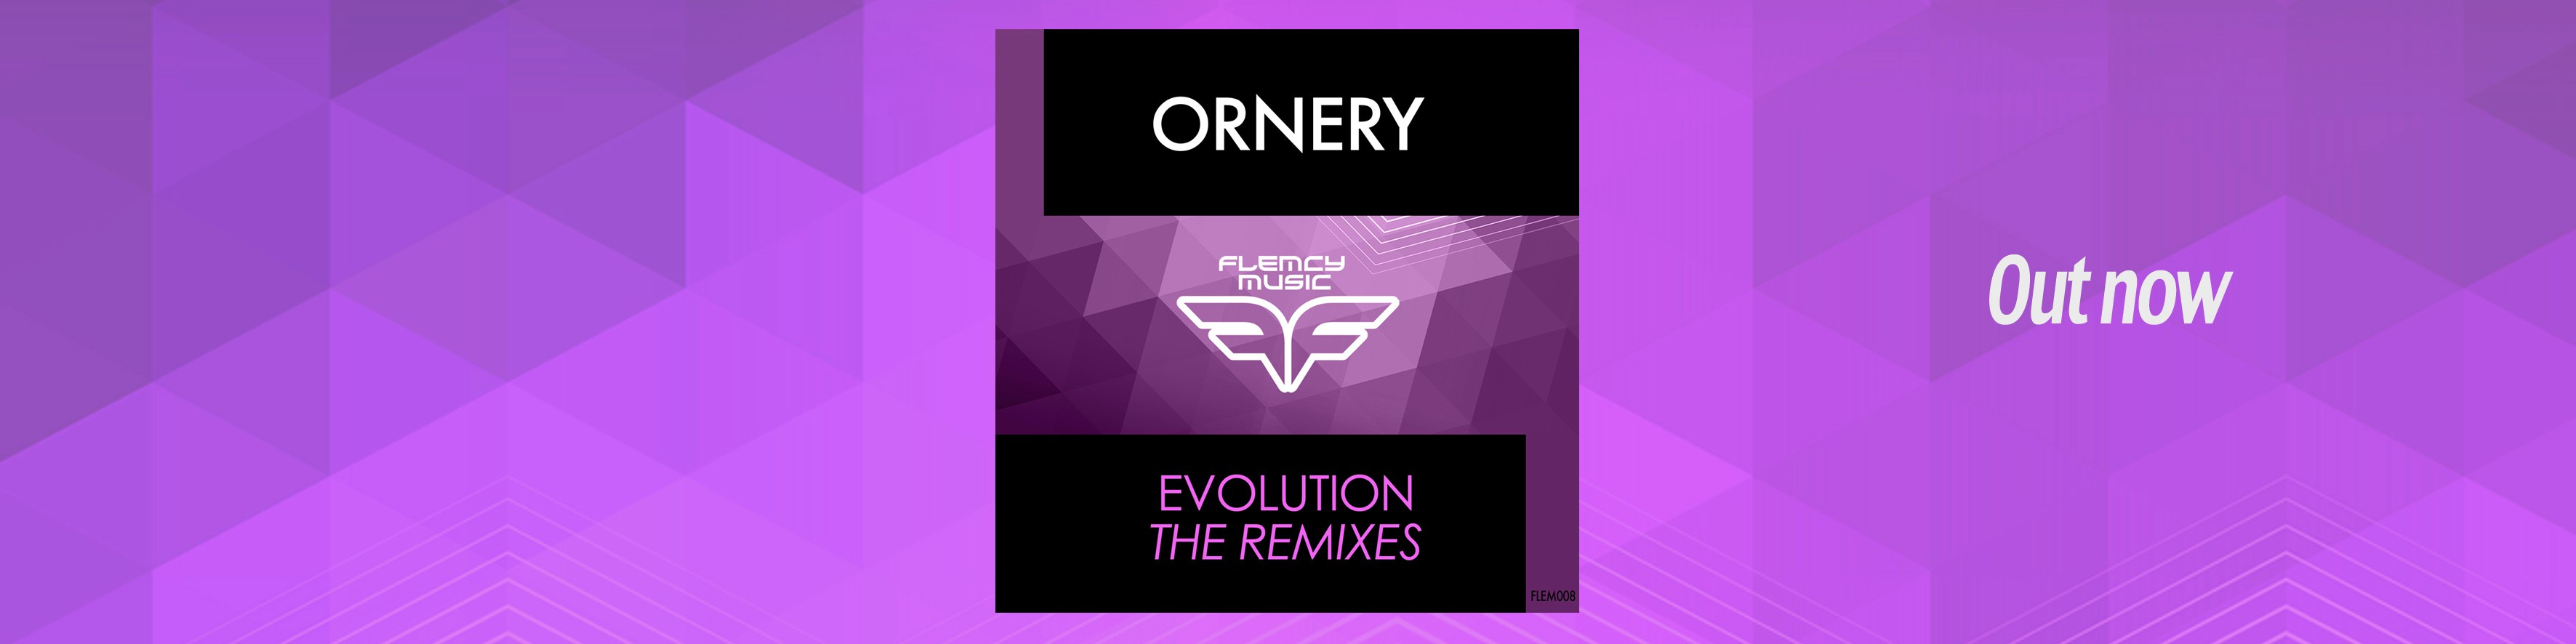 Flemcy banner Ornery – Evolution REMIXES slider Out now